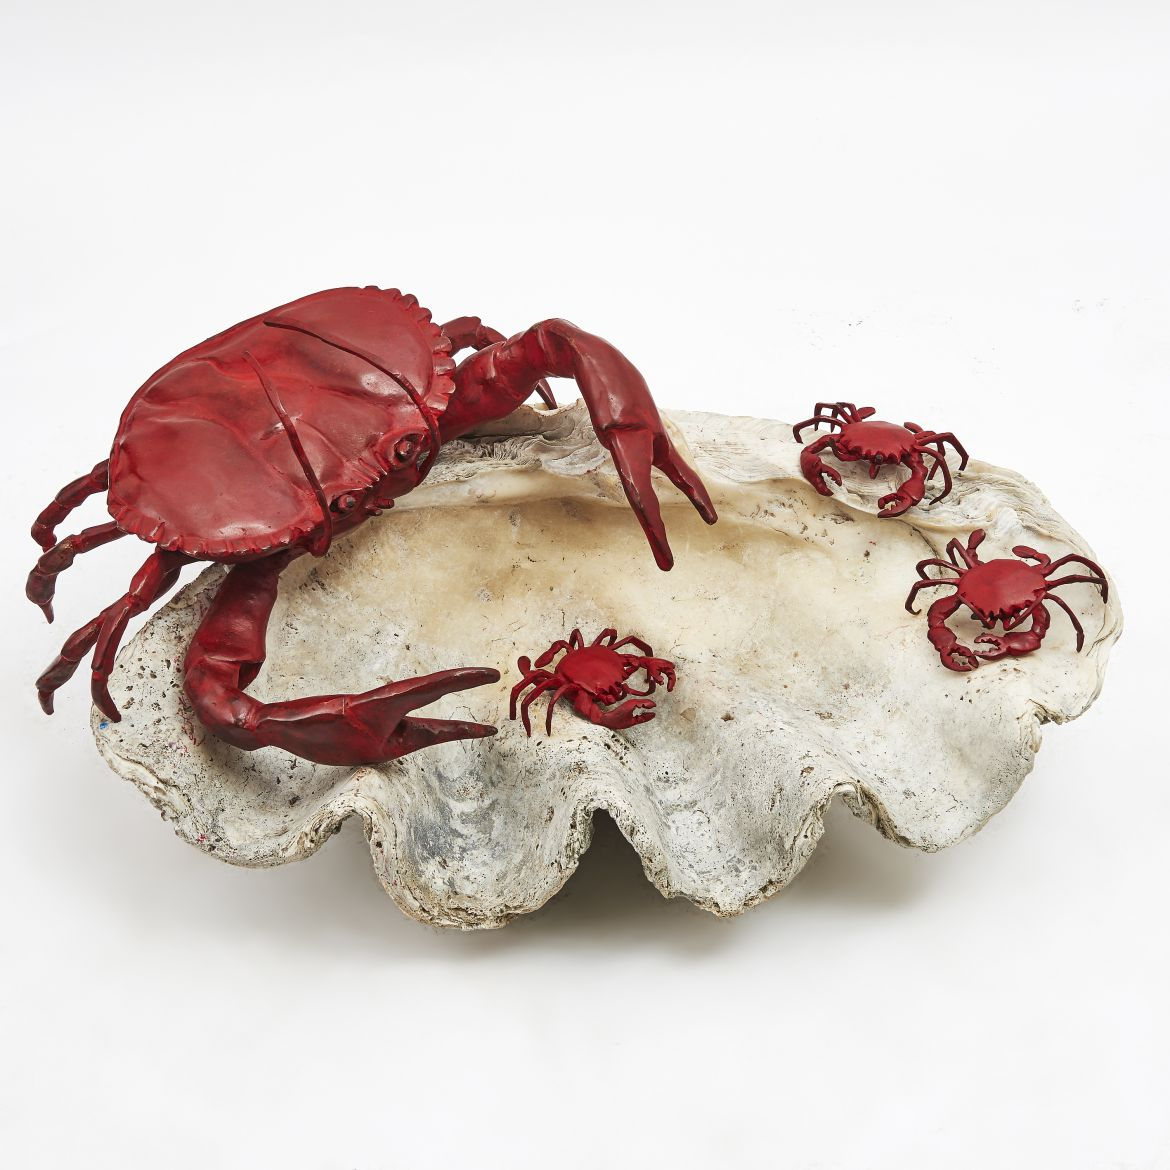 Antique Clam Shell With Paula Swinnen Crabs